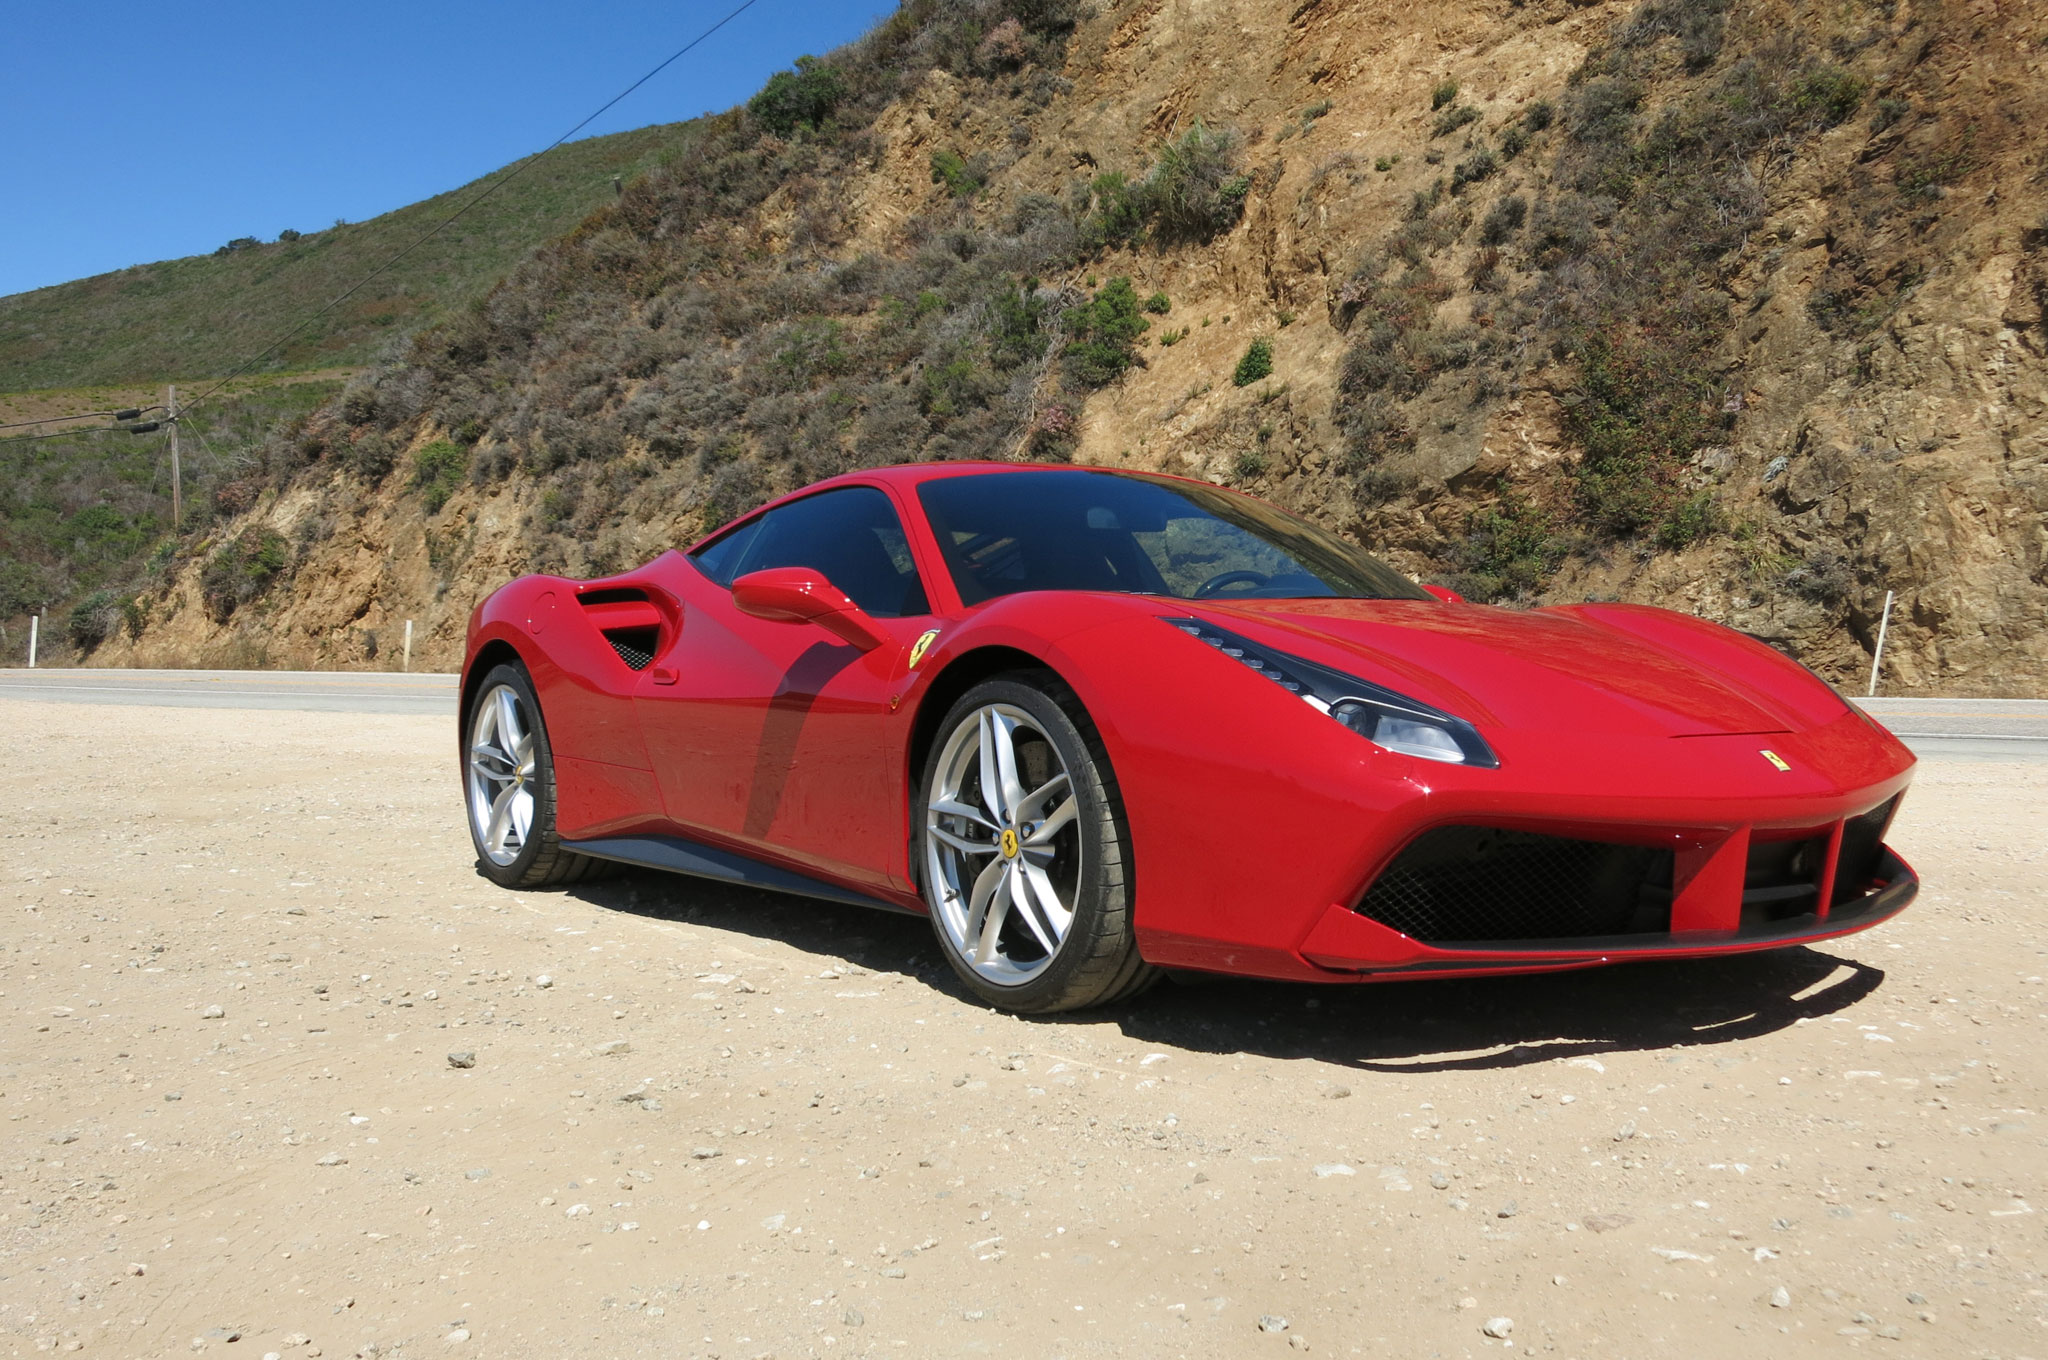 Will Fiat Chryslers Marchionne Use Ferrari As A Dowry